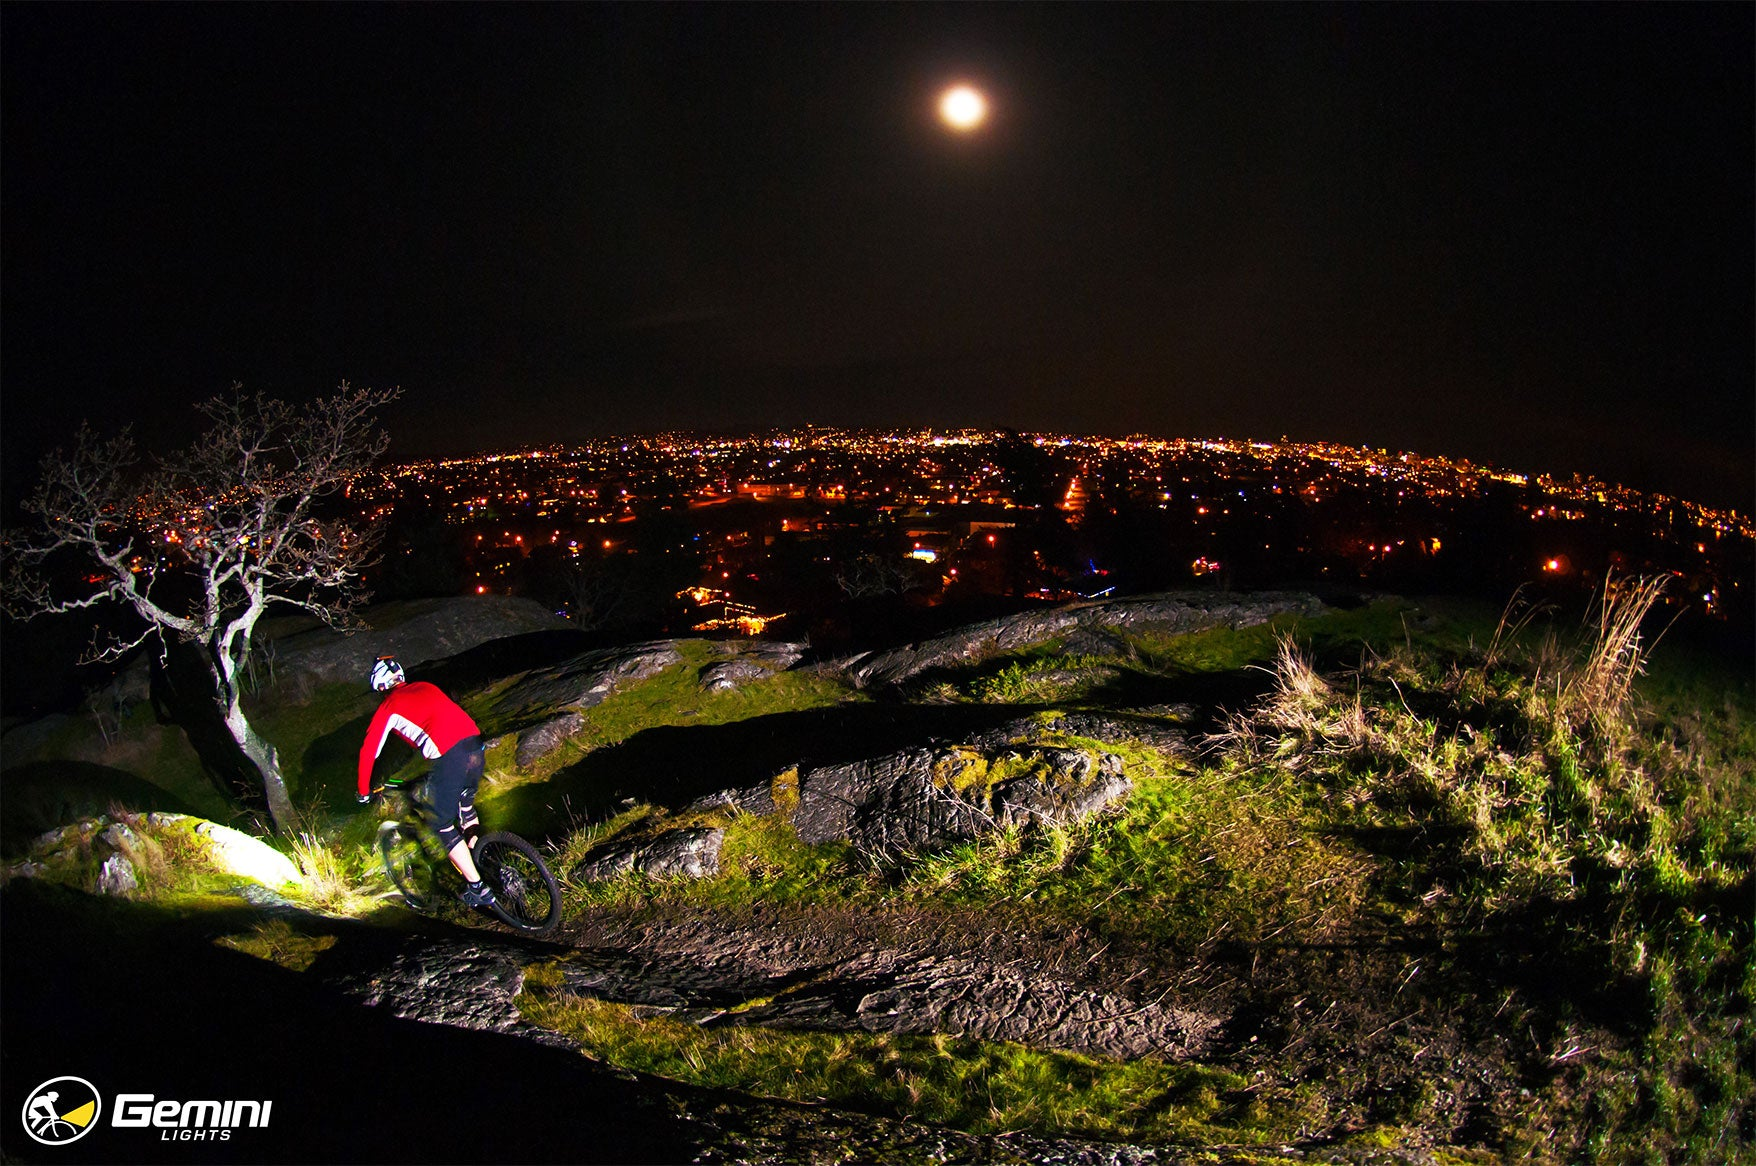 Strahan Loken, Aaron LaRoacque - Night MTB Photoshoot